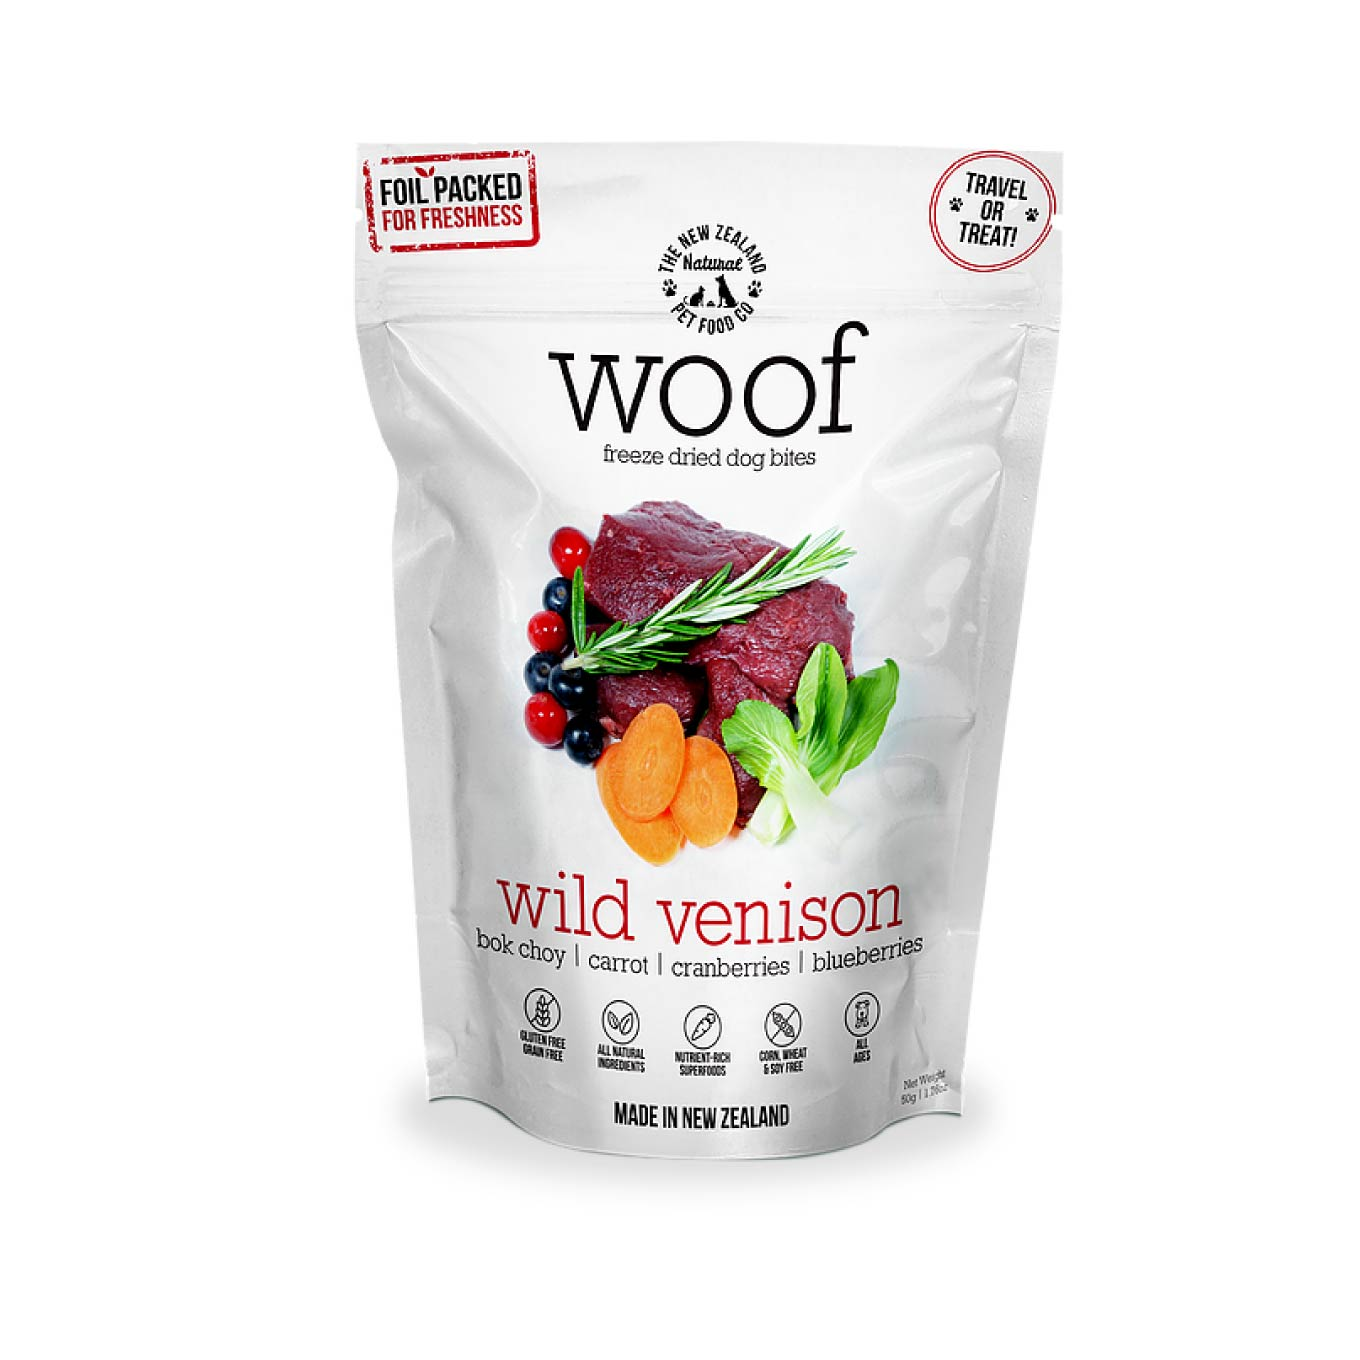 WOOF Wild Venison Freeze-dried Treats | 50g - Dogs, Treats, WOOF - Shop Vanillapup - Online Pet Shop